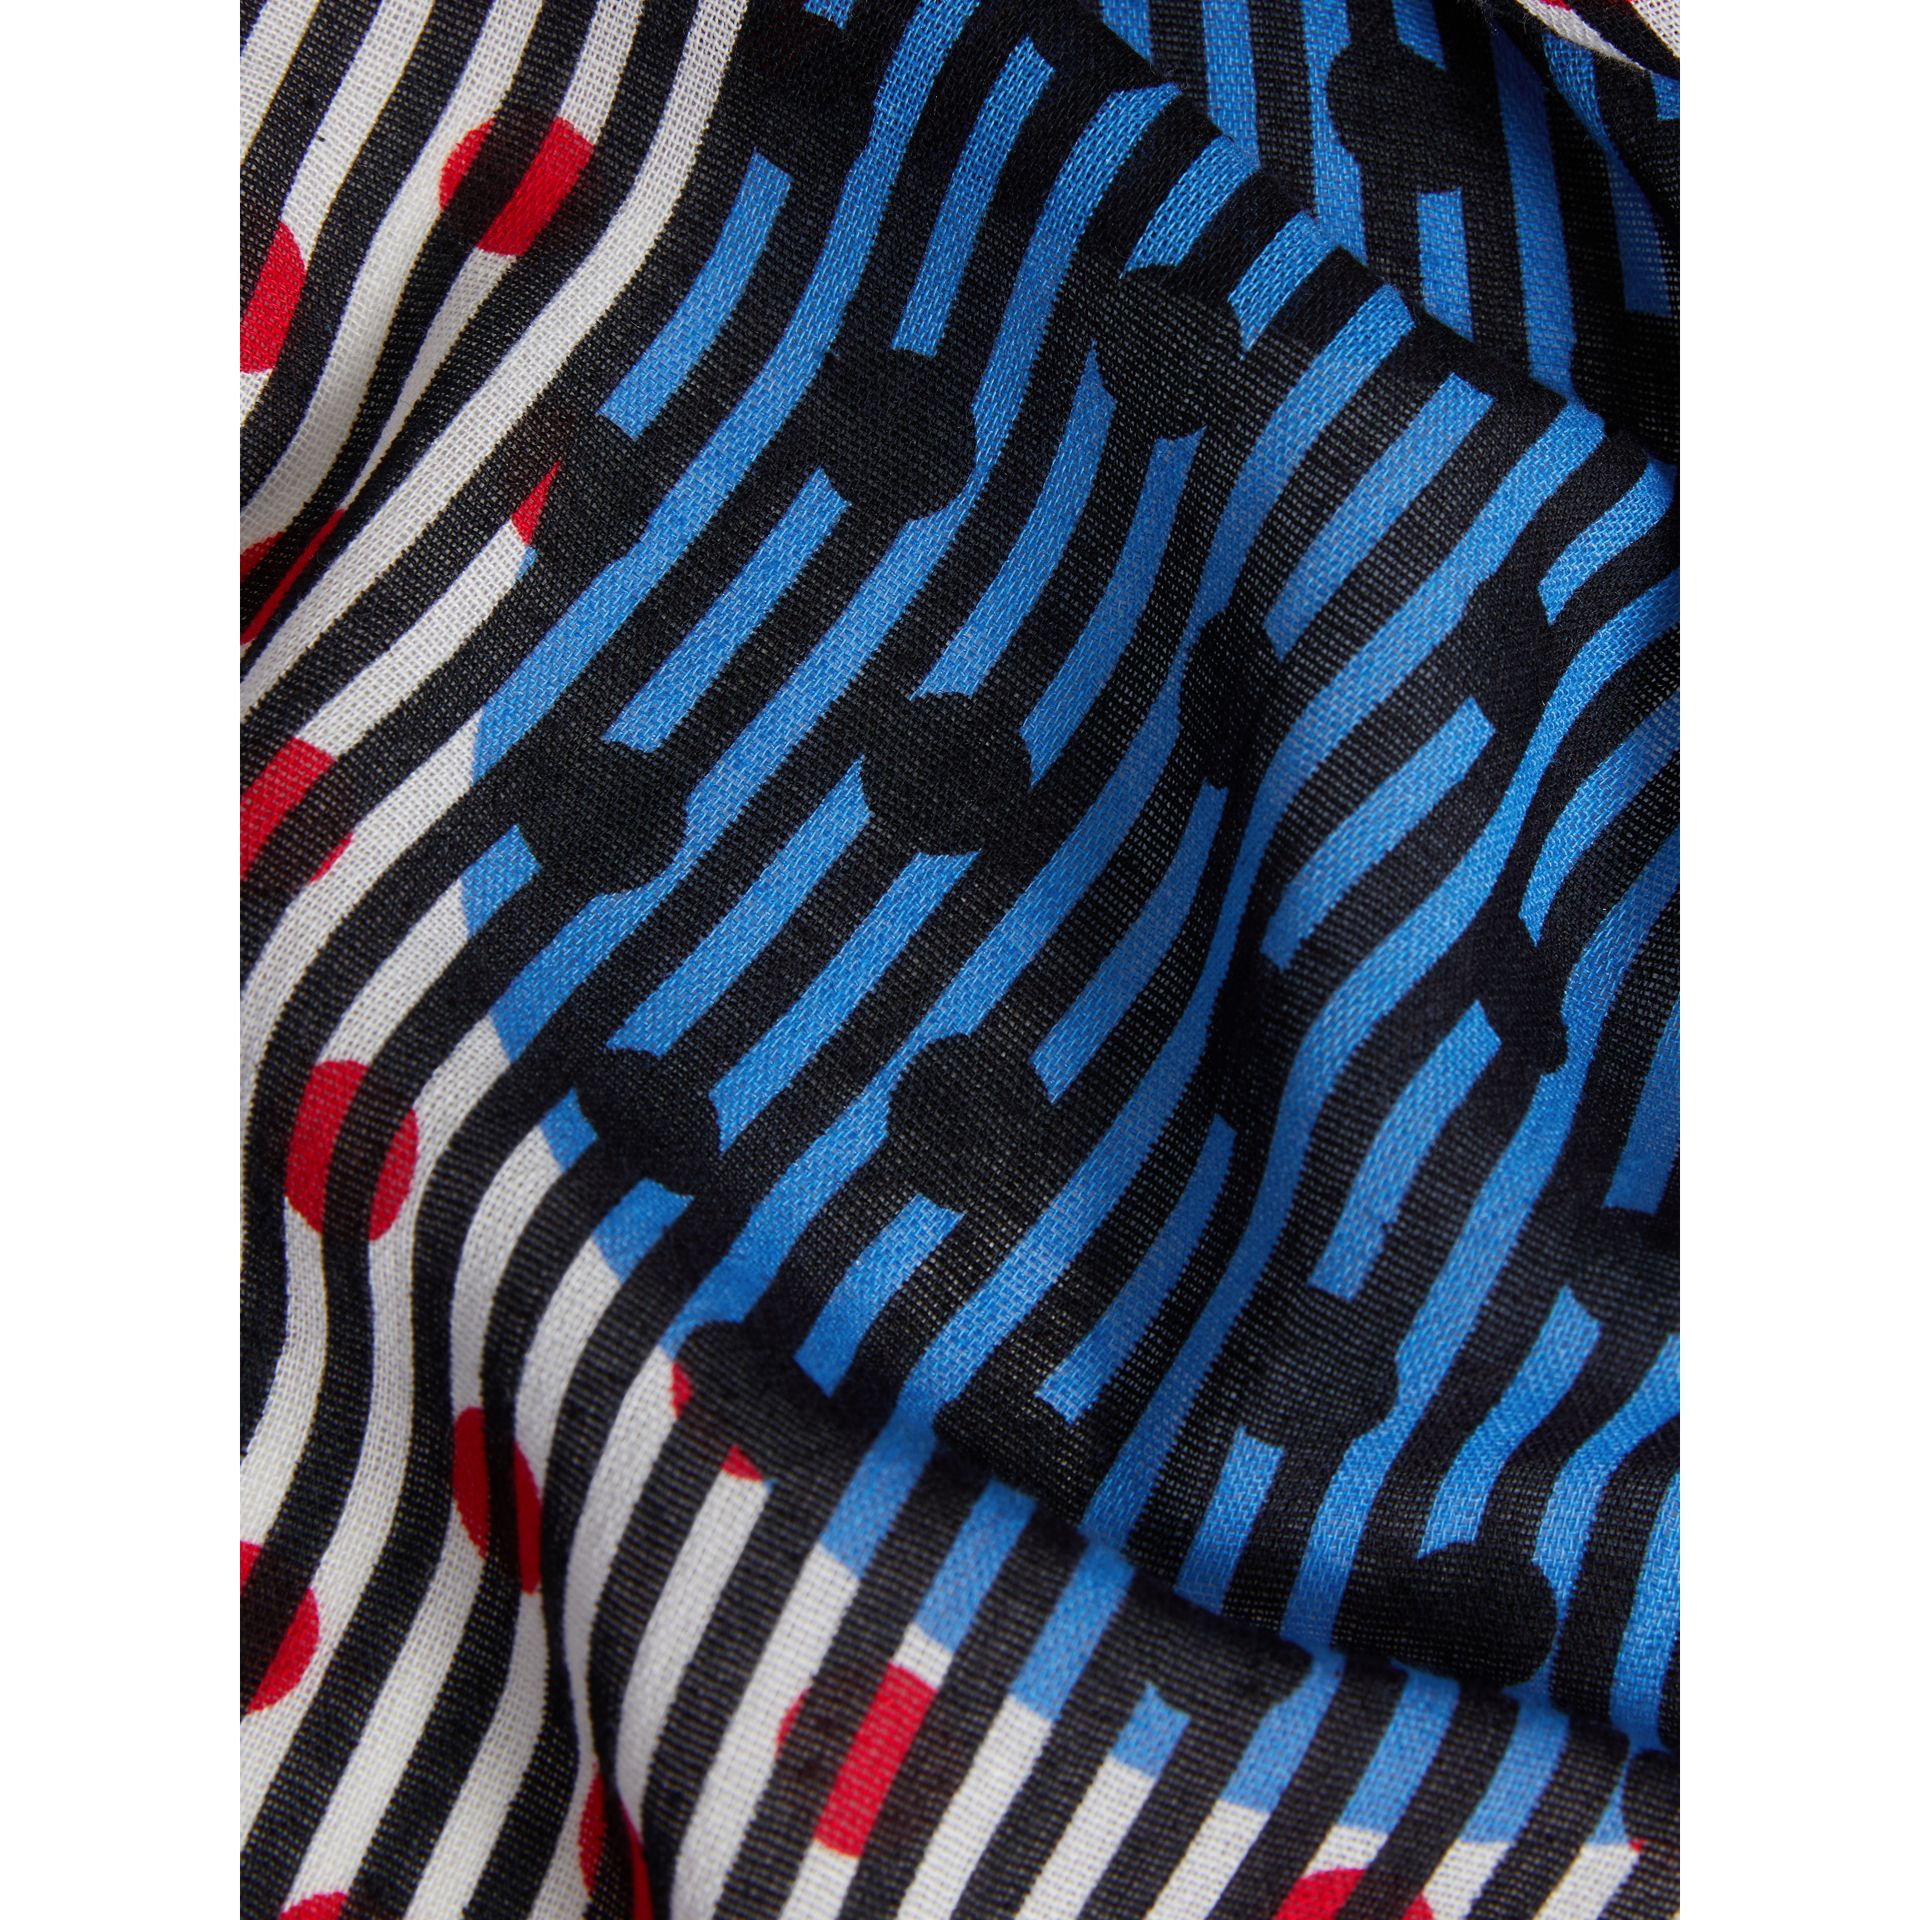 Graphic Spot and Stripe Print Silk Cotton Scarf in Azure Blue | Burberry - gallery image 1